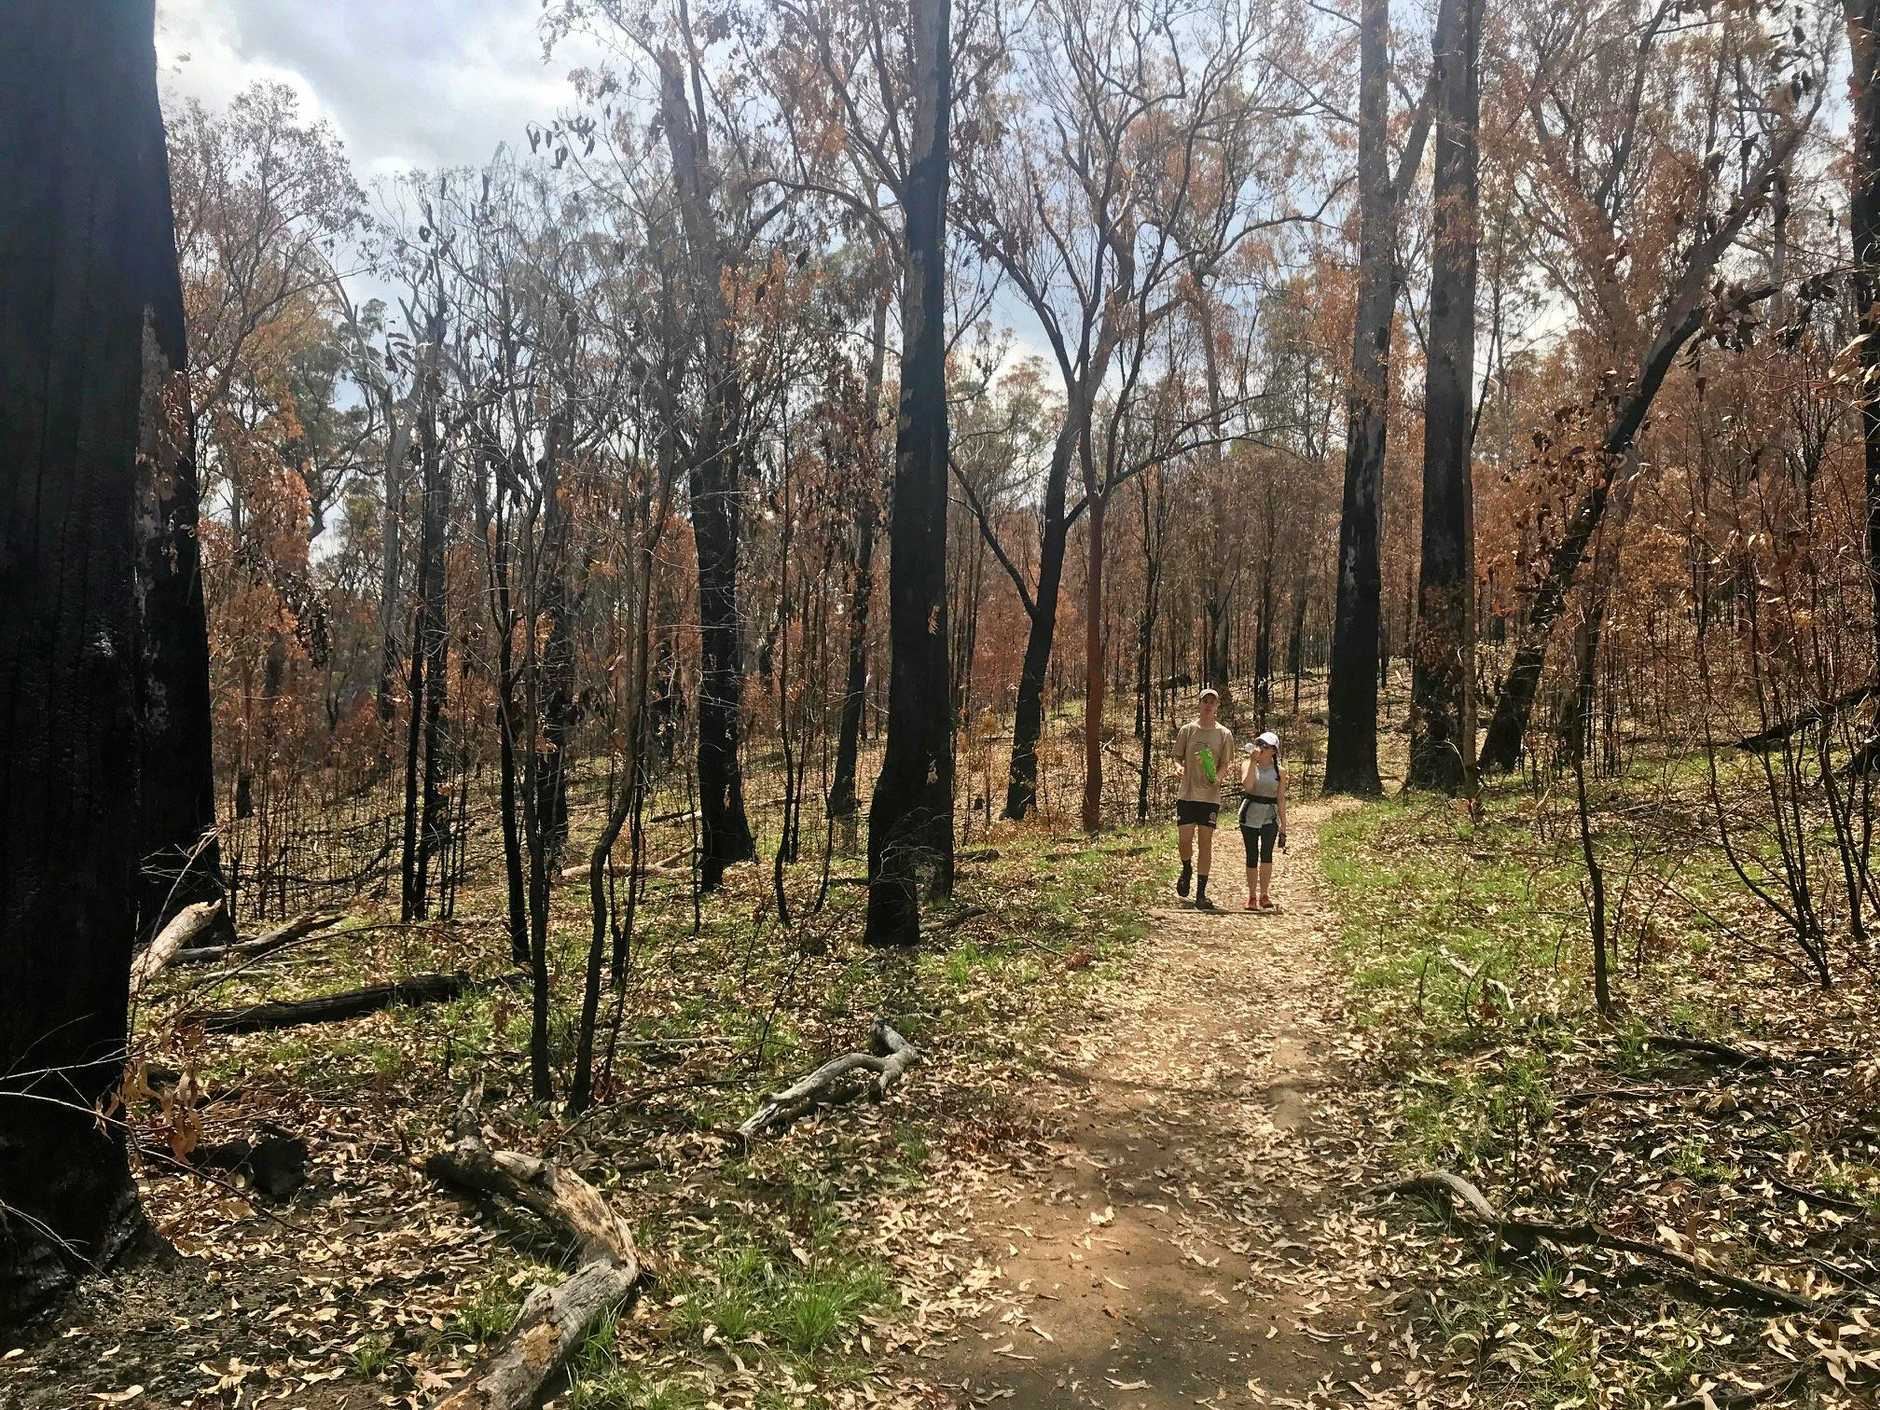 AFTER THE FIRES: The regrowth and renewal begins.